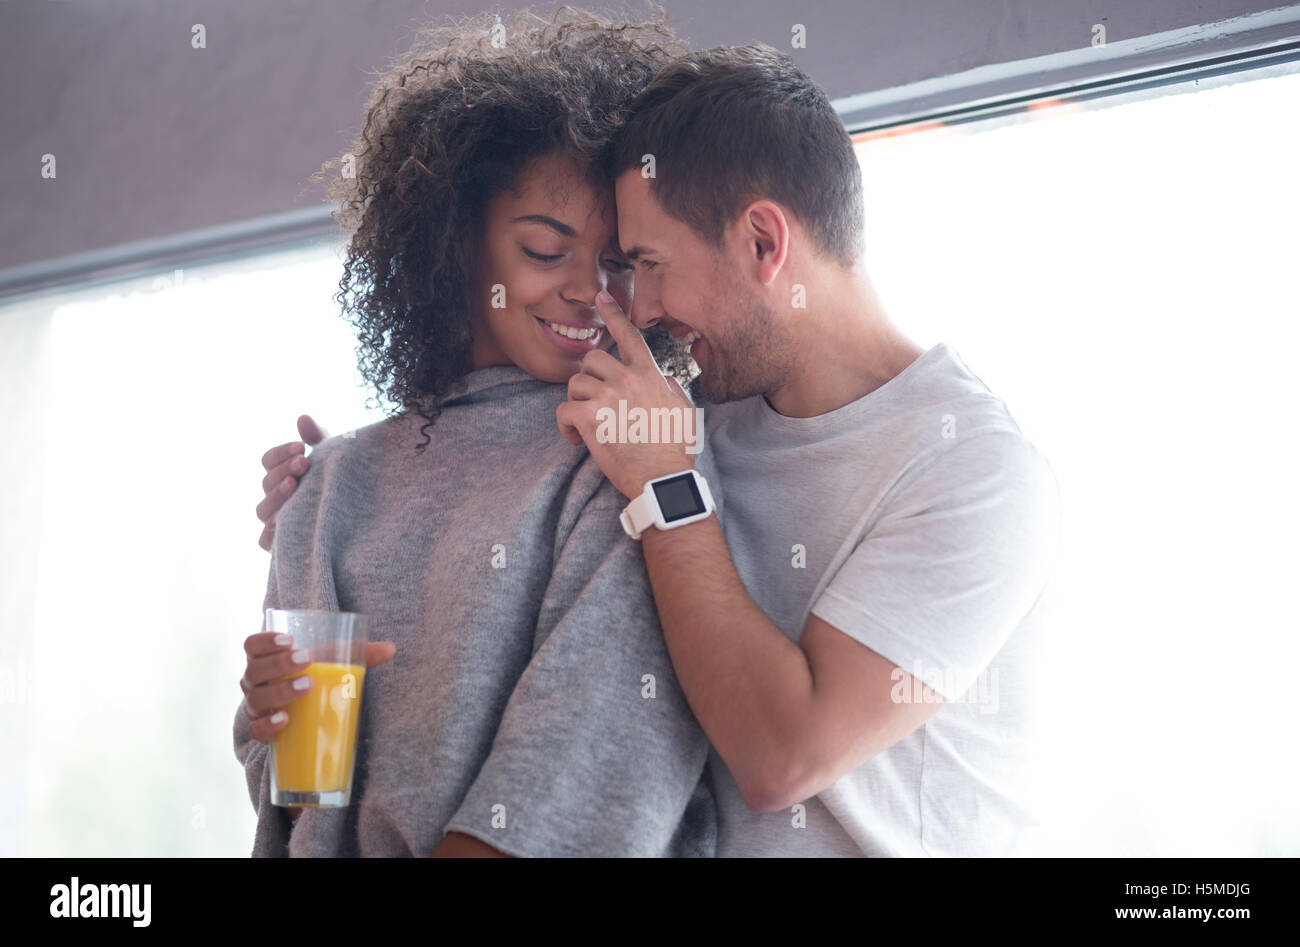 Smiling man touching the nose of his girlfriend tenderly - Stock Image